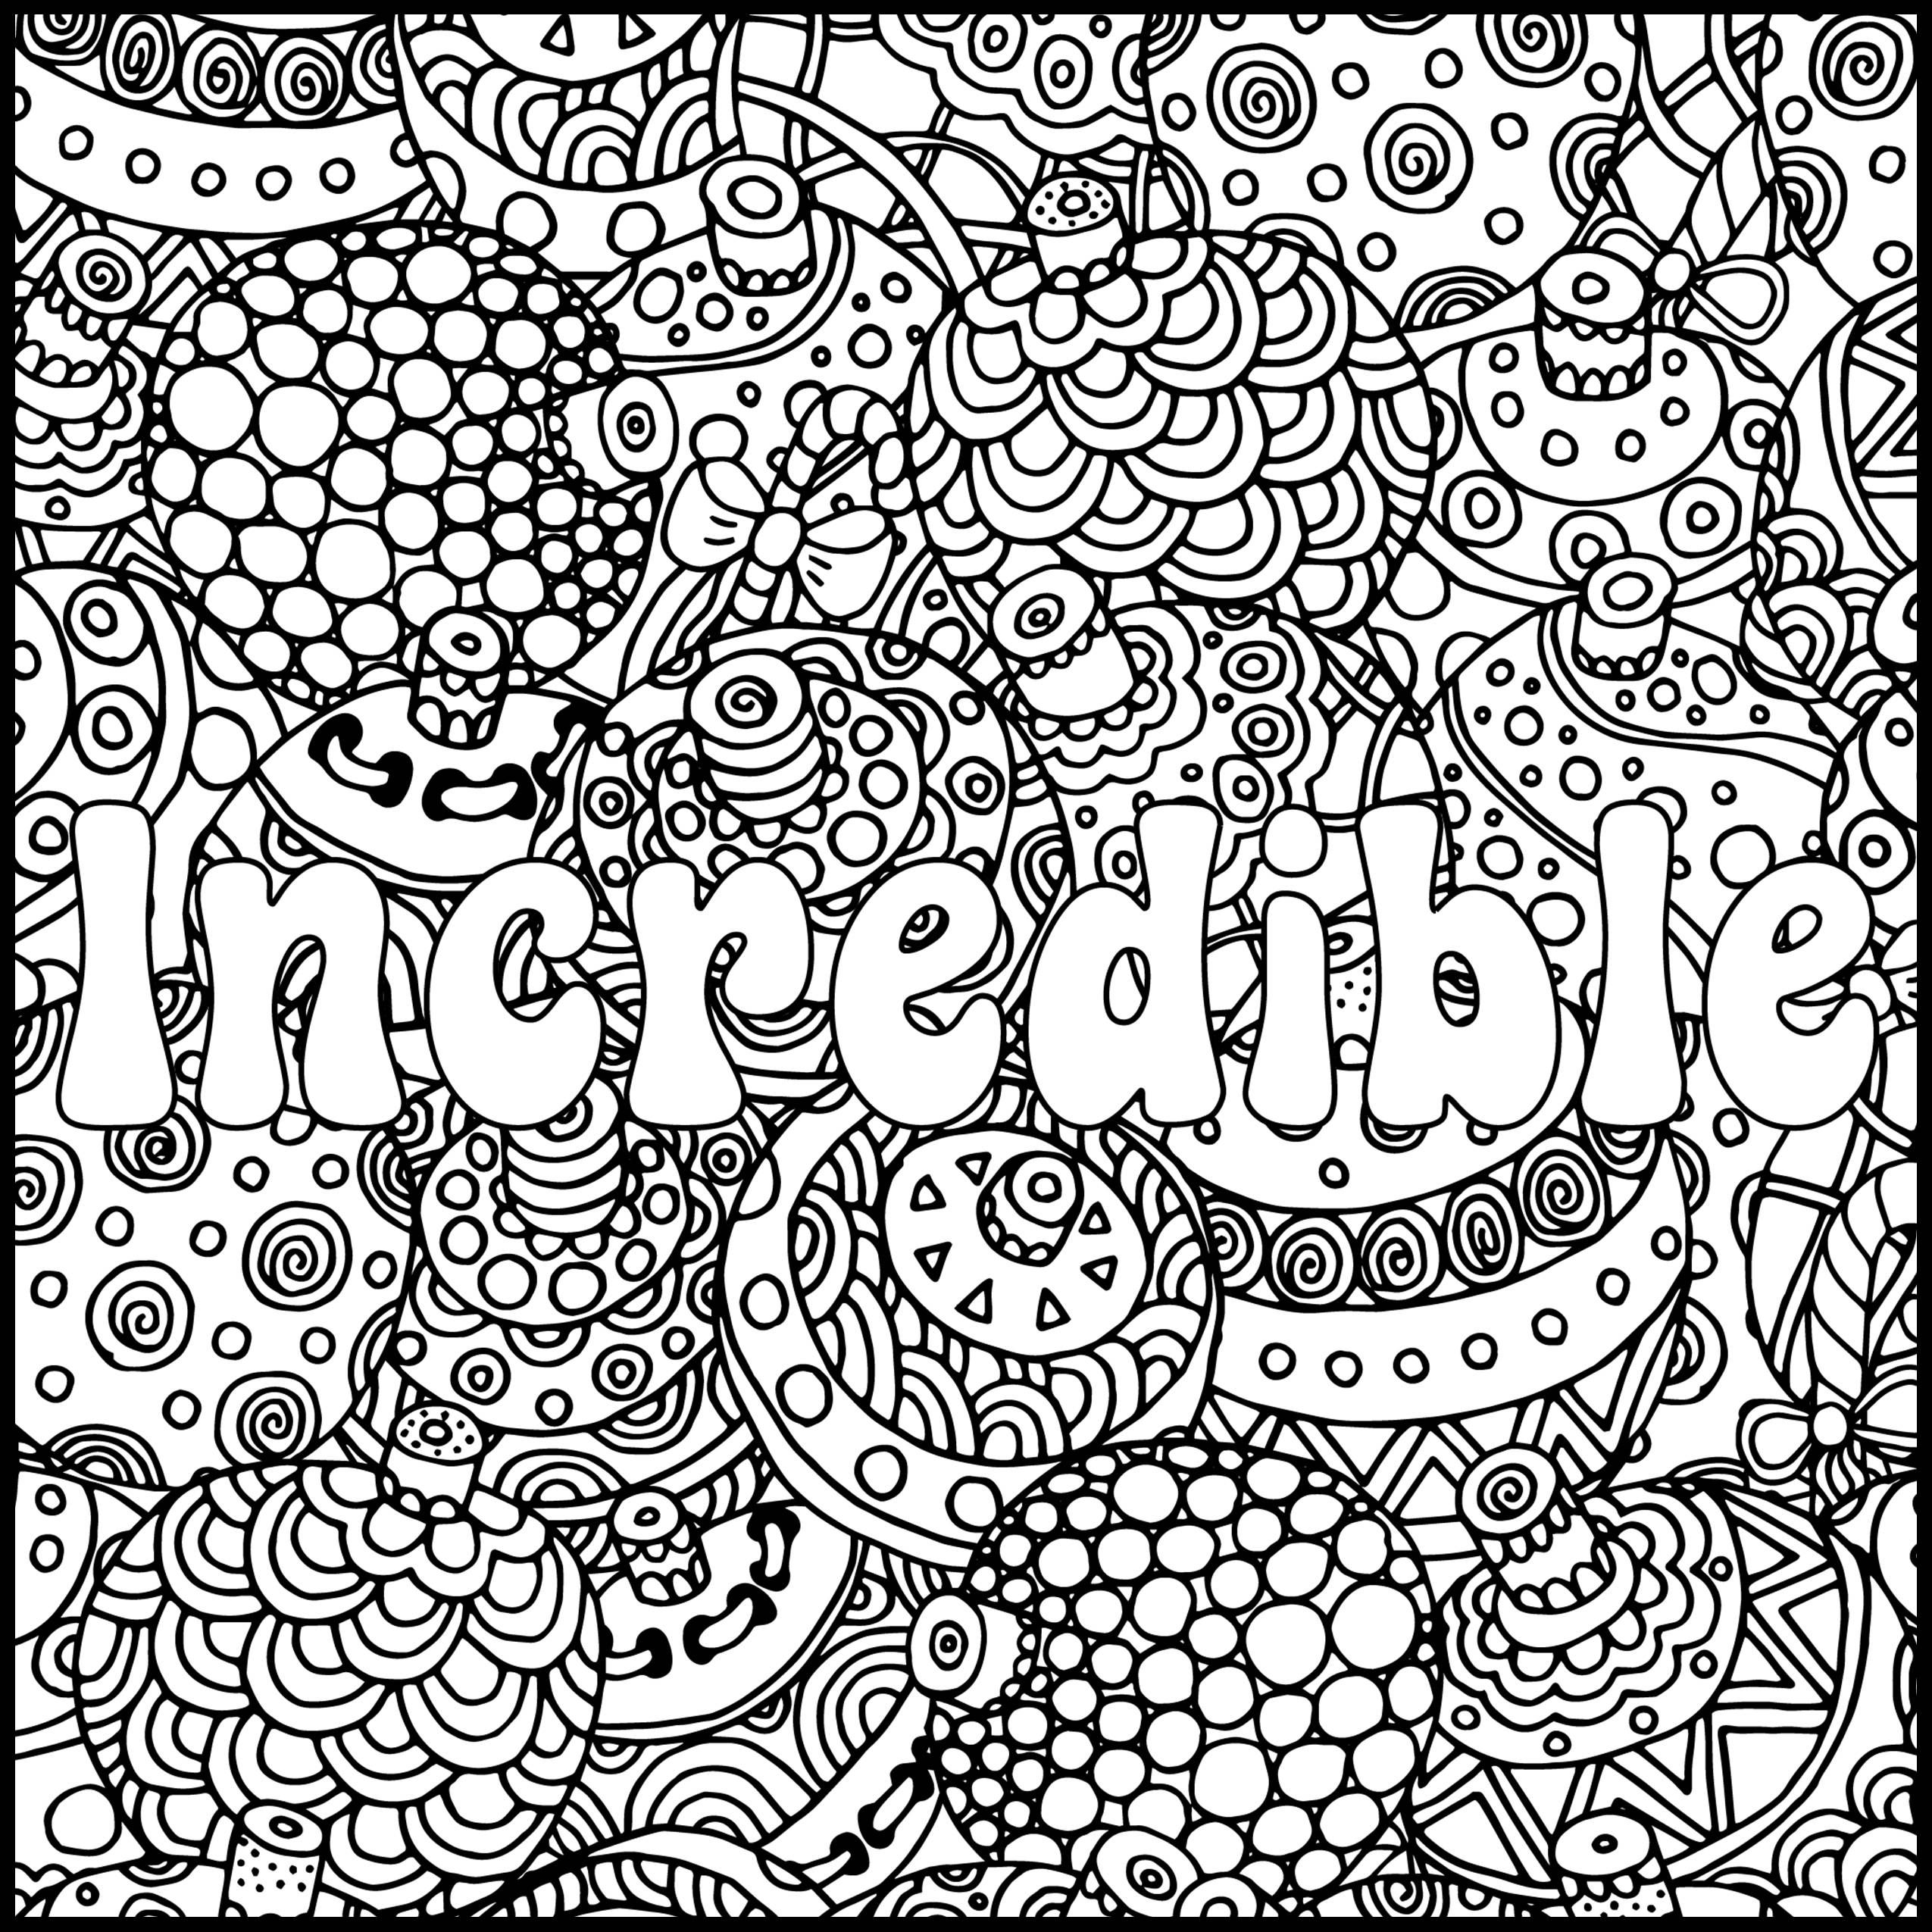 Positive Word Coloring Page Incredible Positive Adult Color